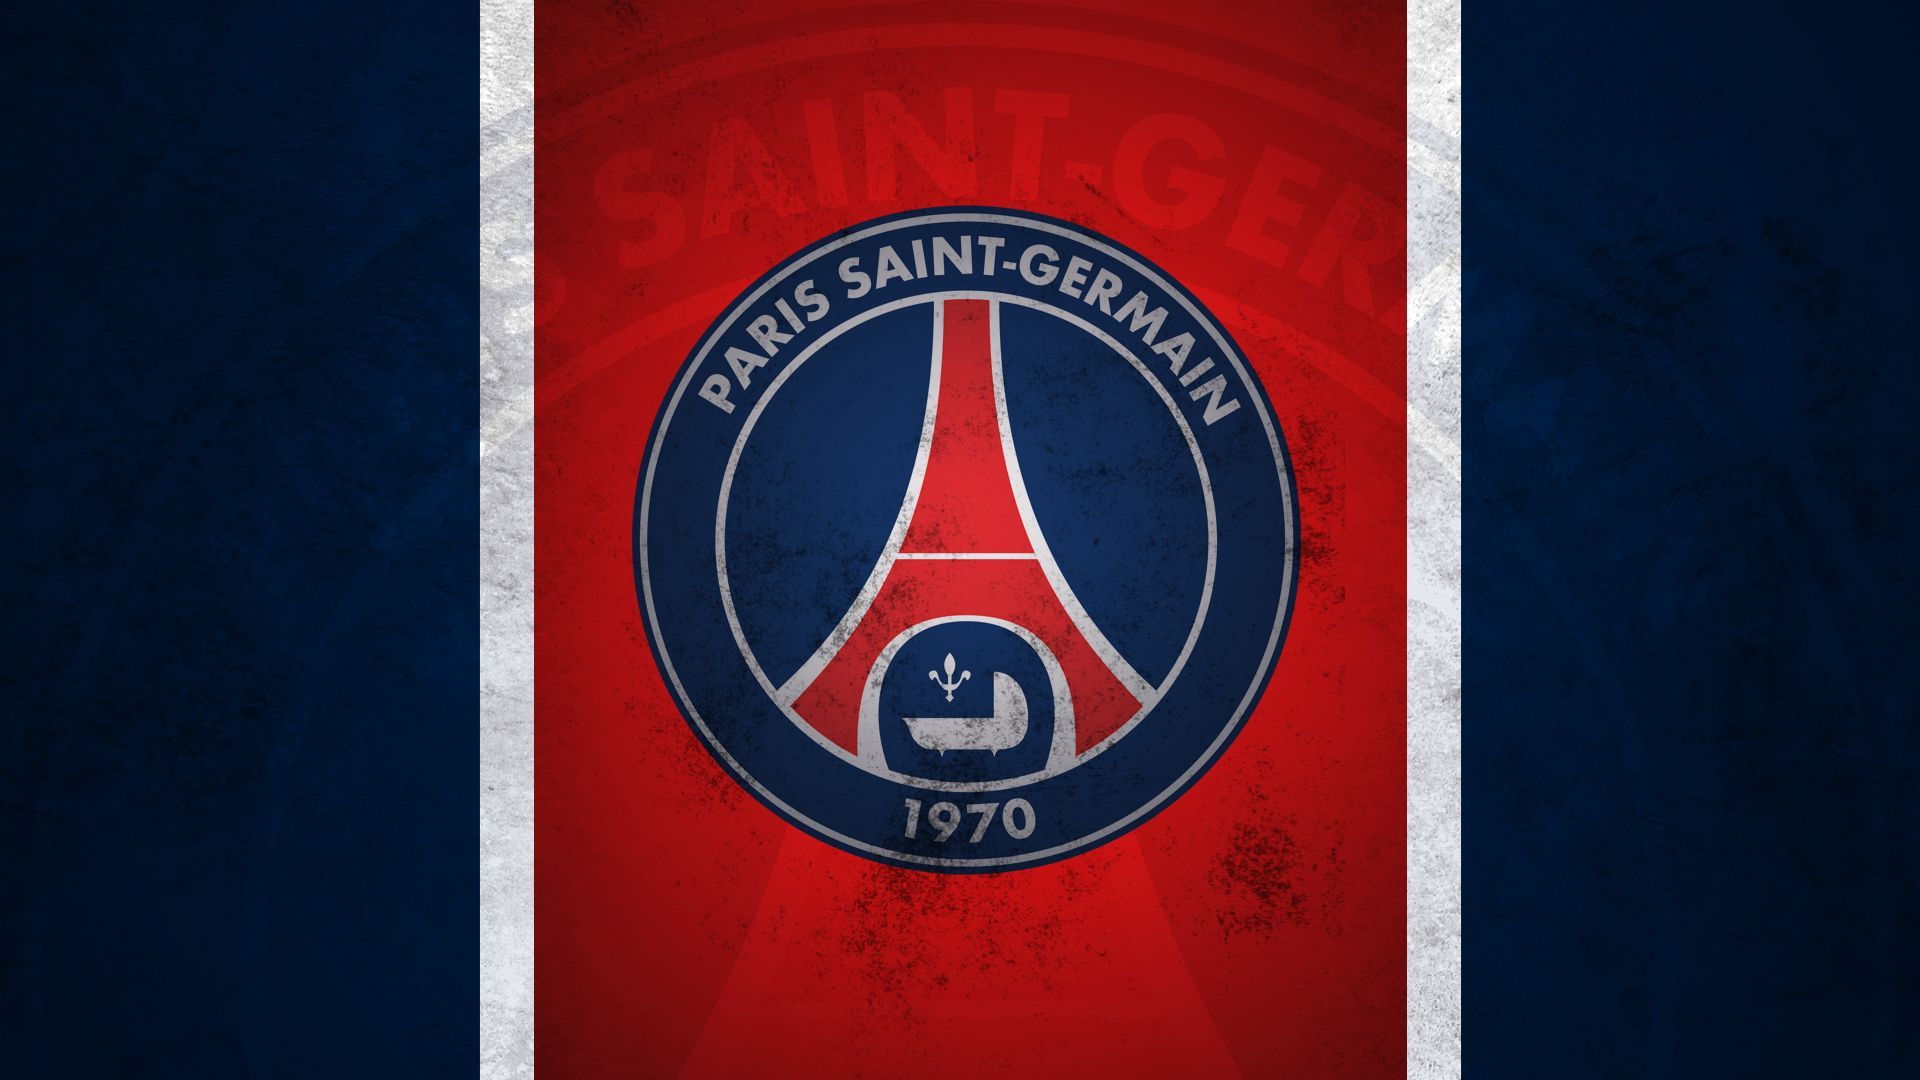 PSG Paris Saint Germain Logo Wallpaper